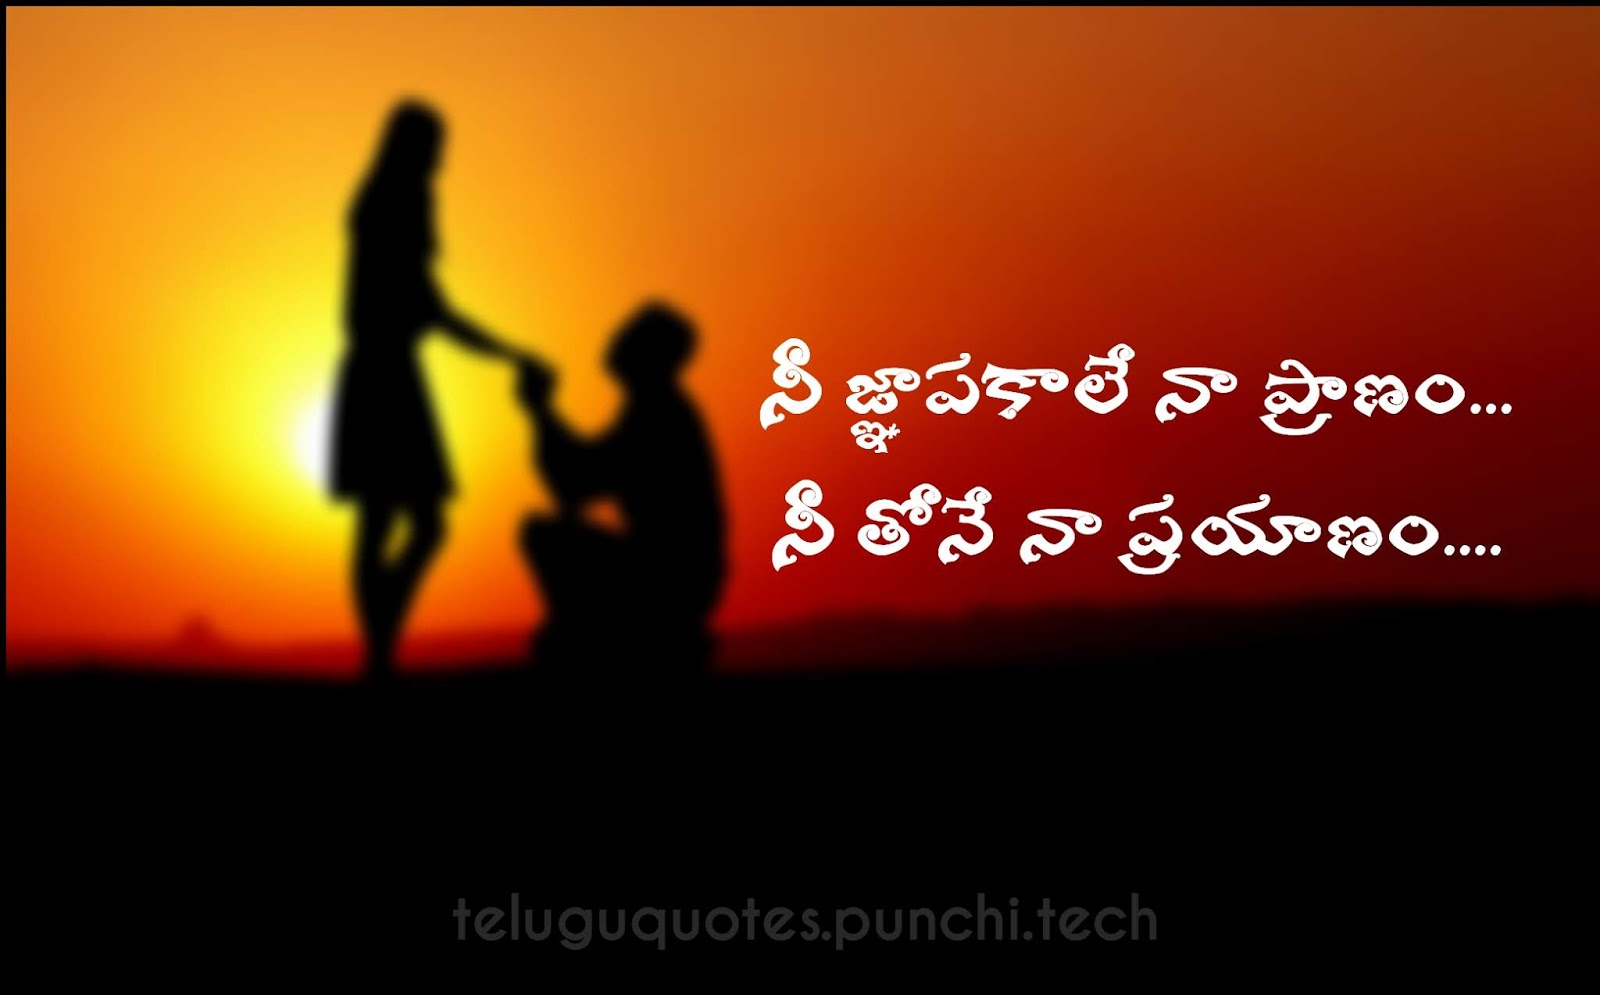 Telugu Quotes About Love